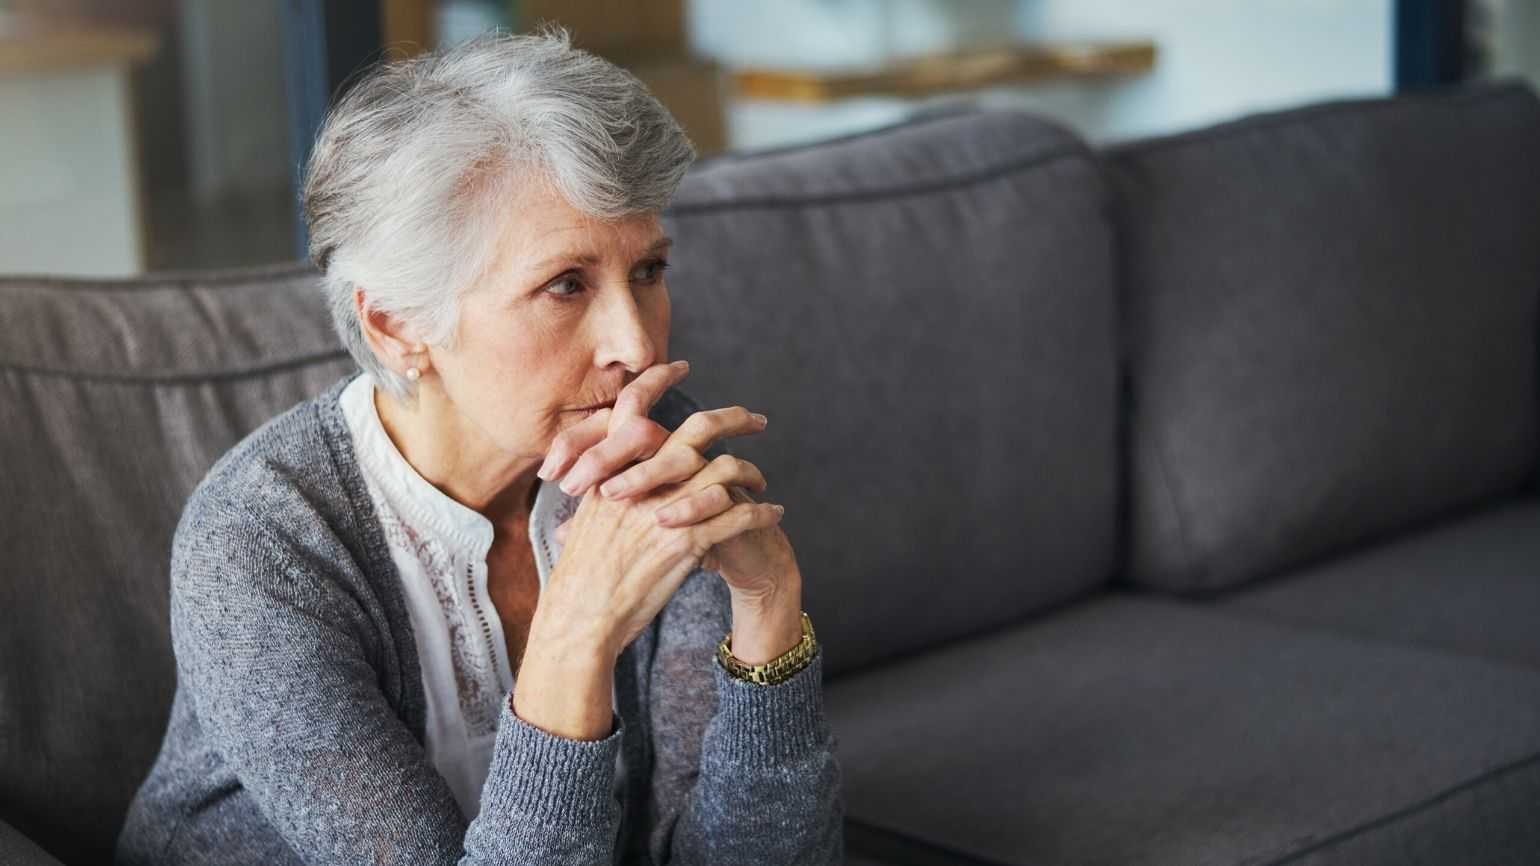 Woman sit on couch looking pensive